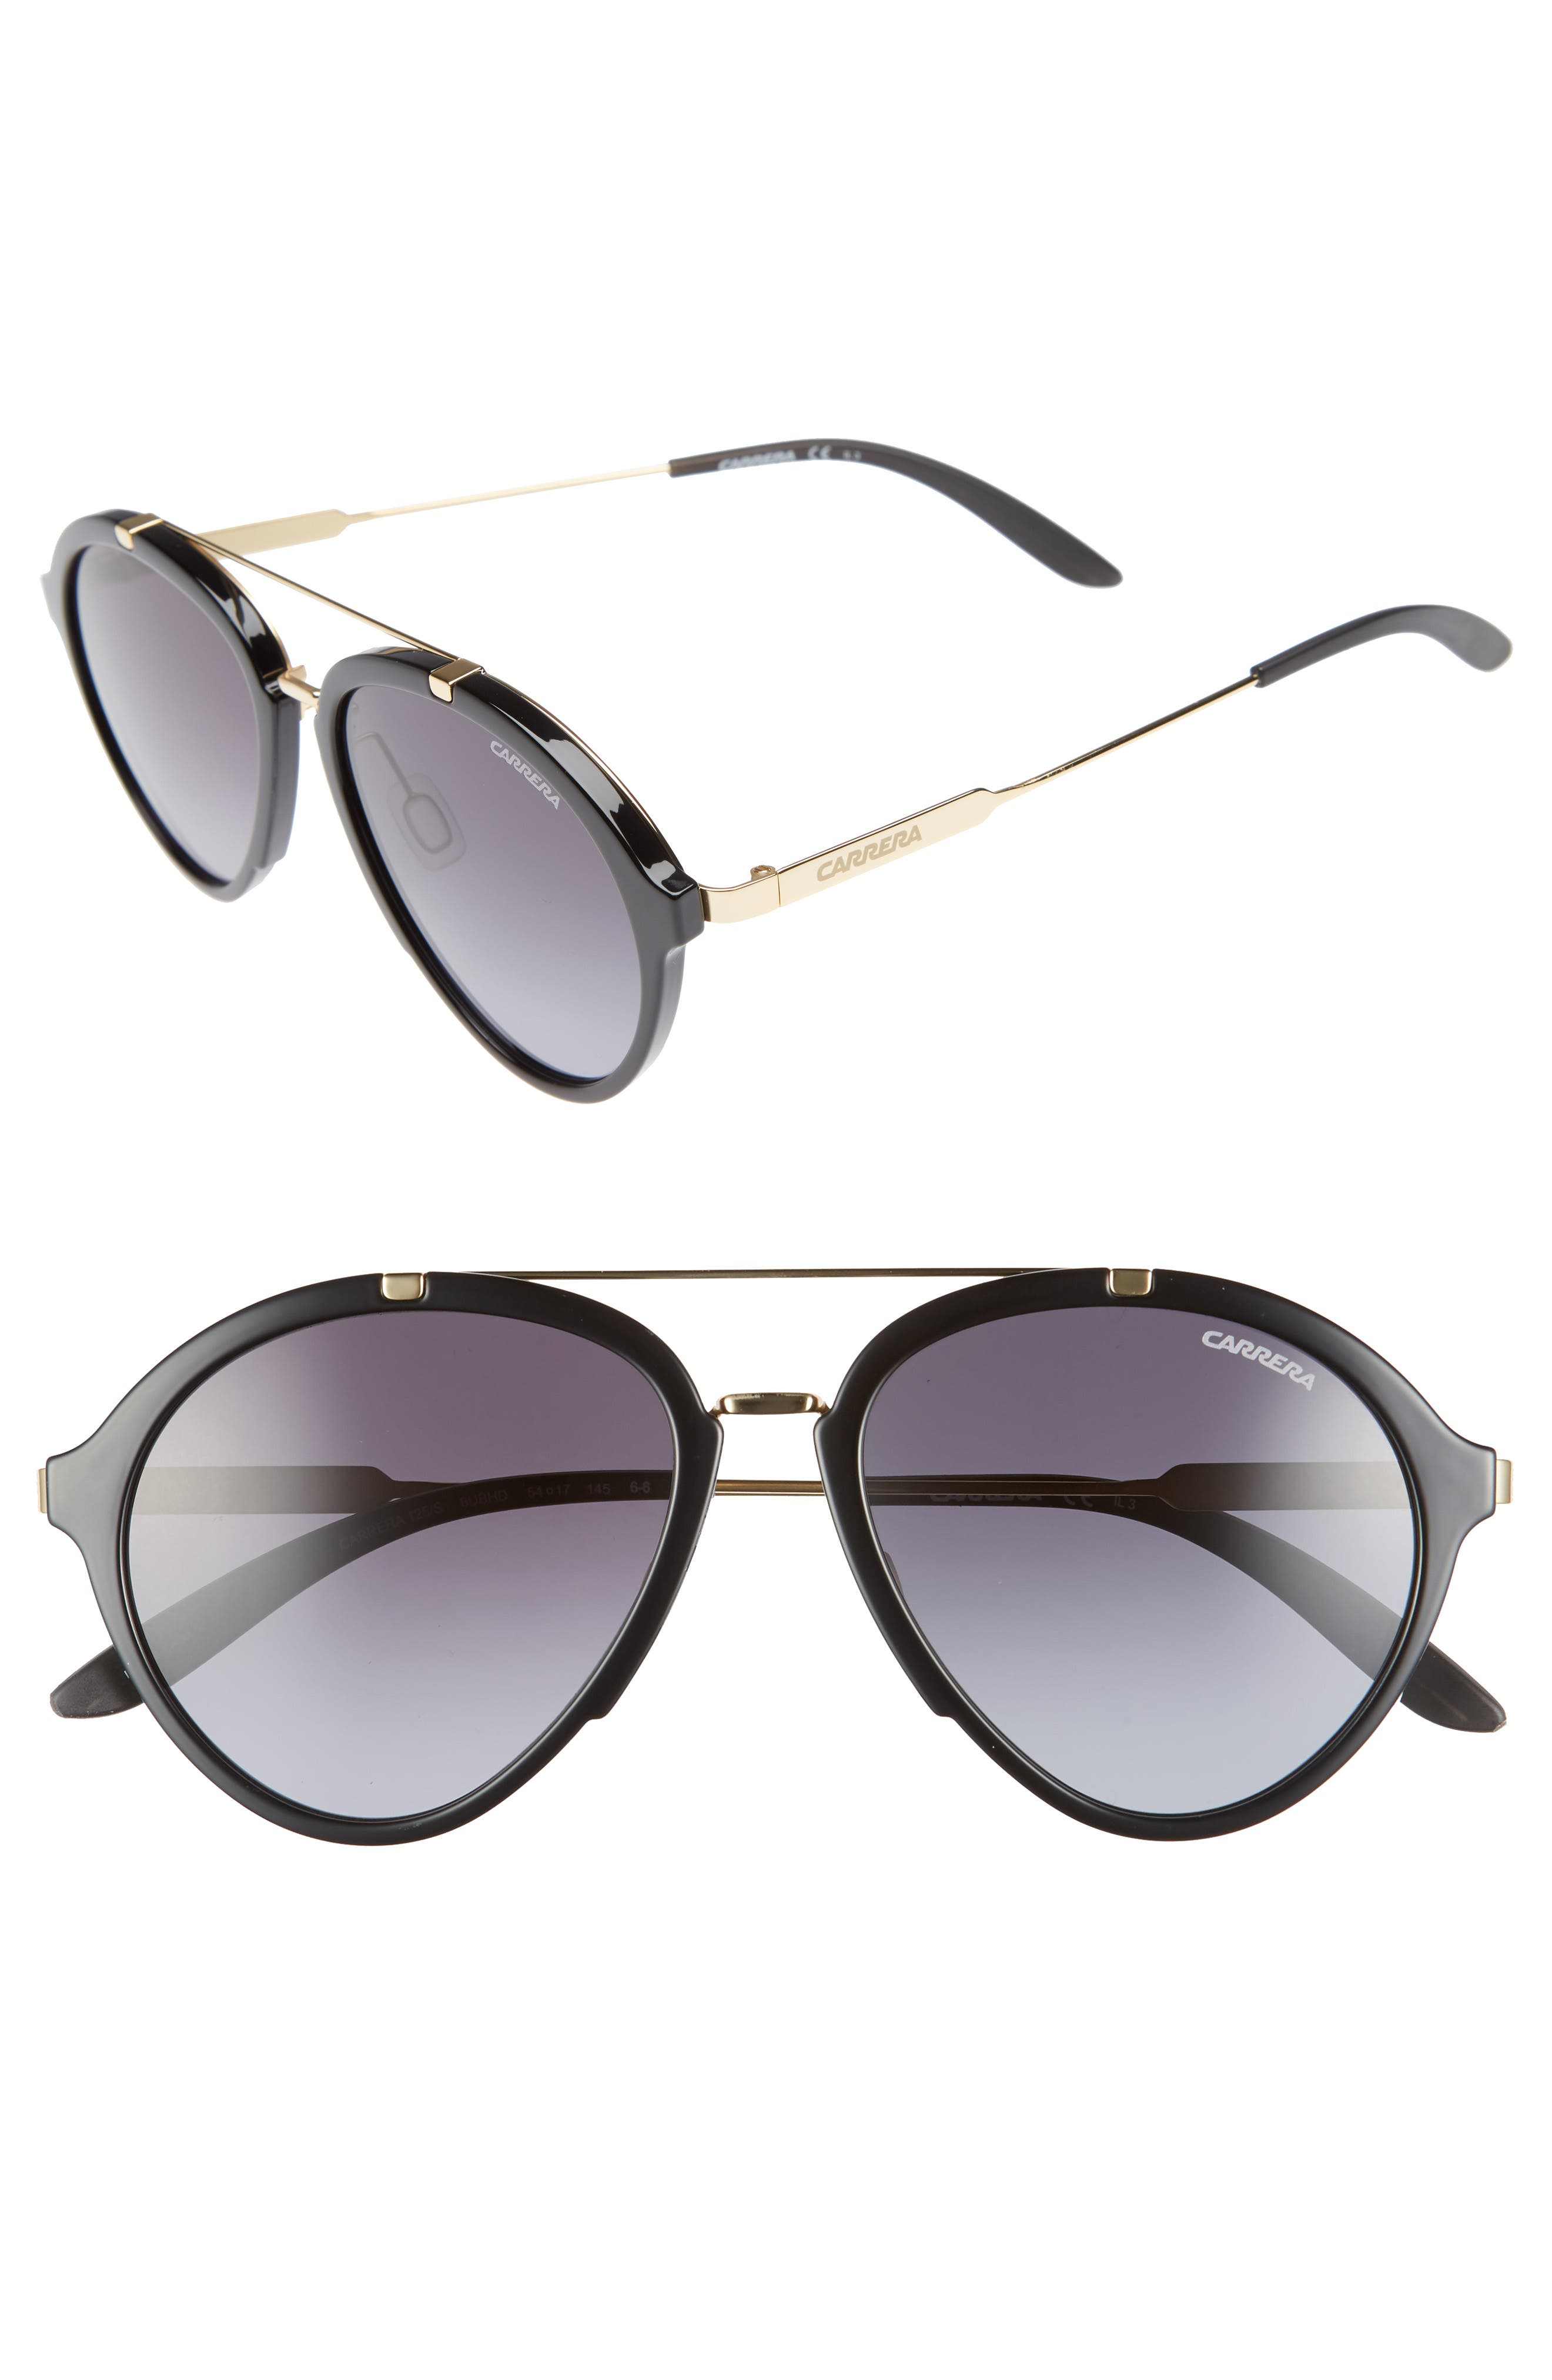 54mm Aviator Sunglasses,                             Main thumbnail 1, color,                             Shiny Black Gold